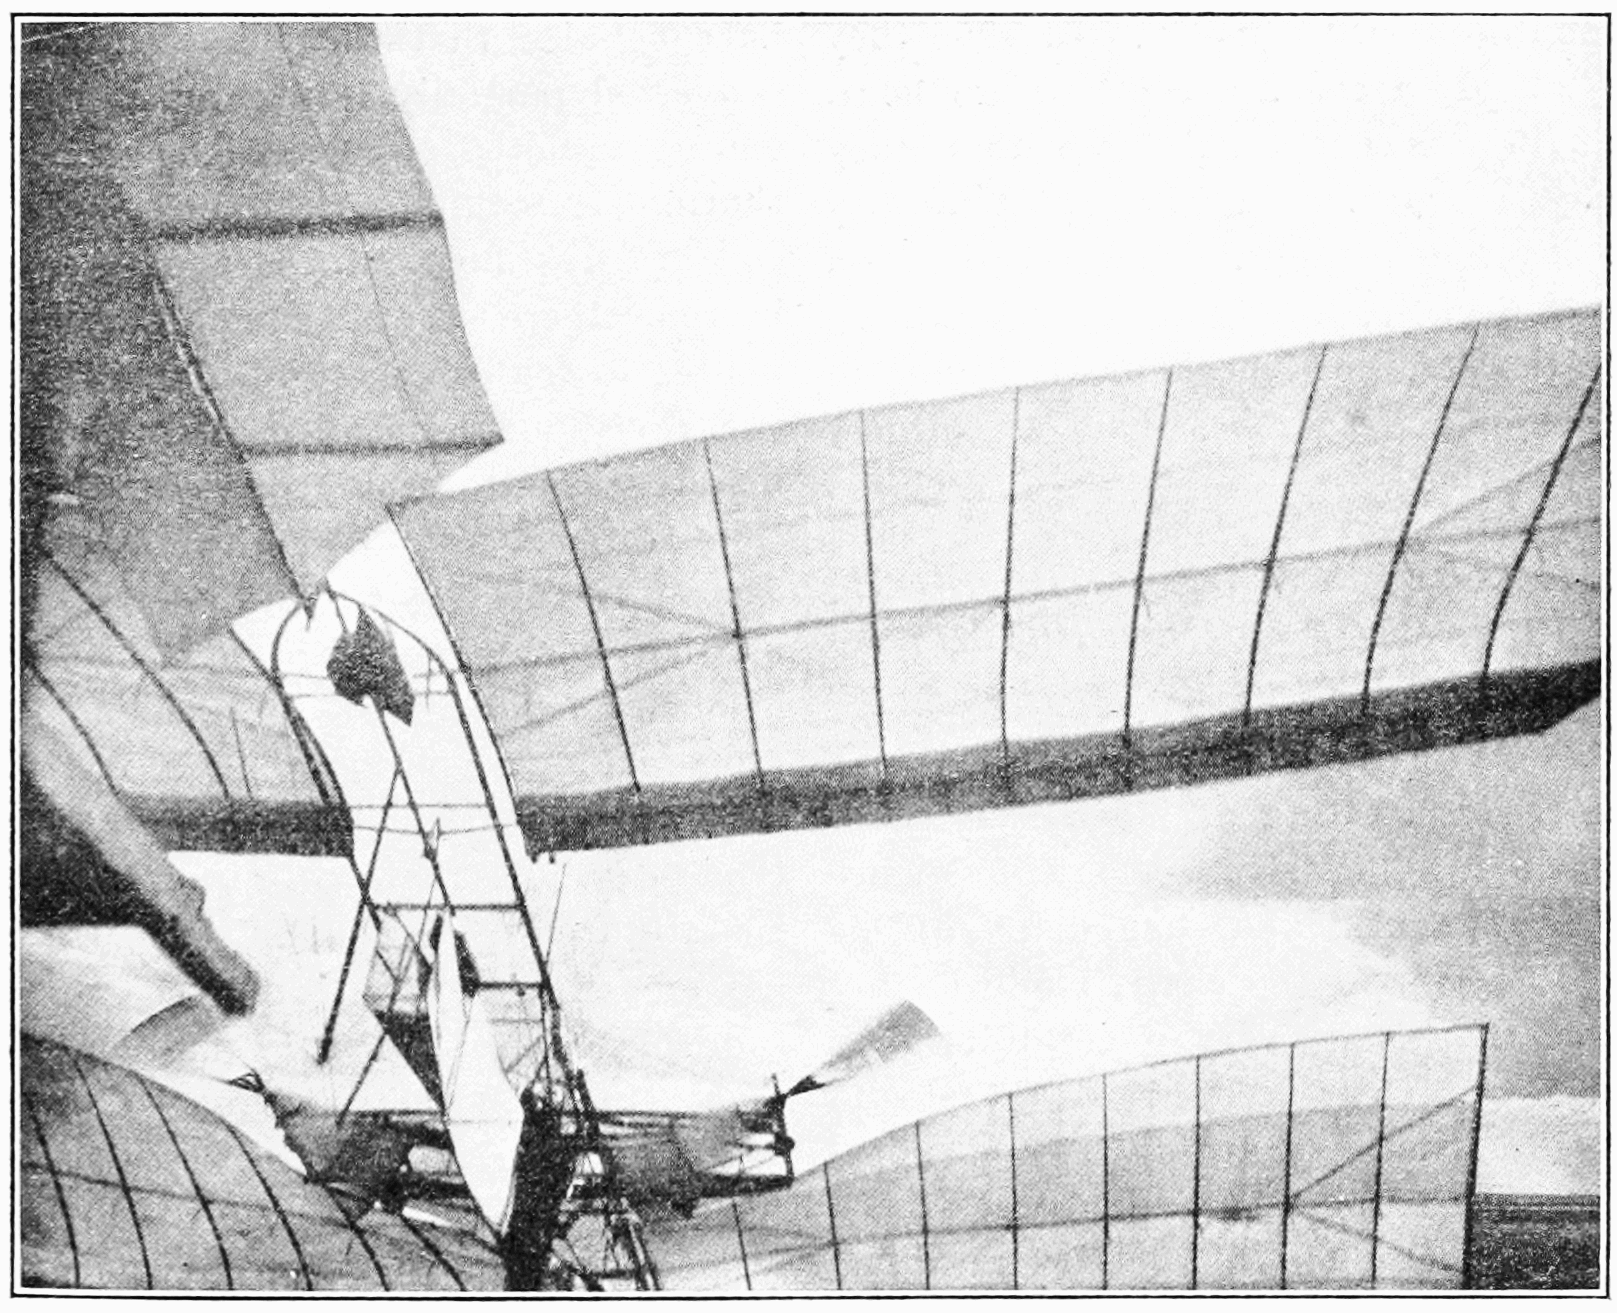 PSM V79 D415 Flight of large aerodrome on oct 7 1903.png